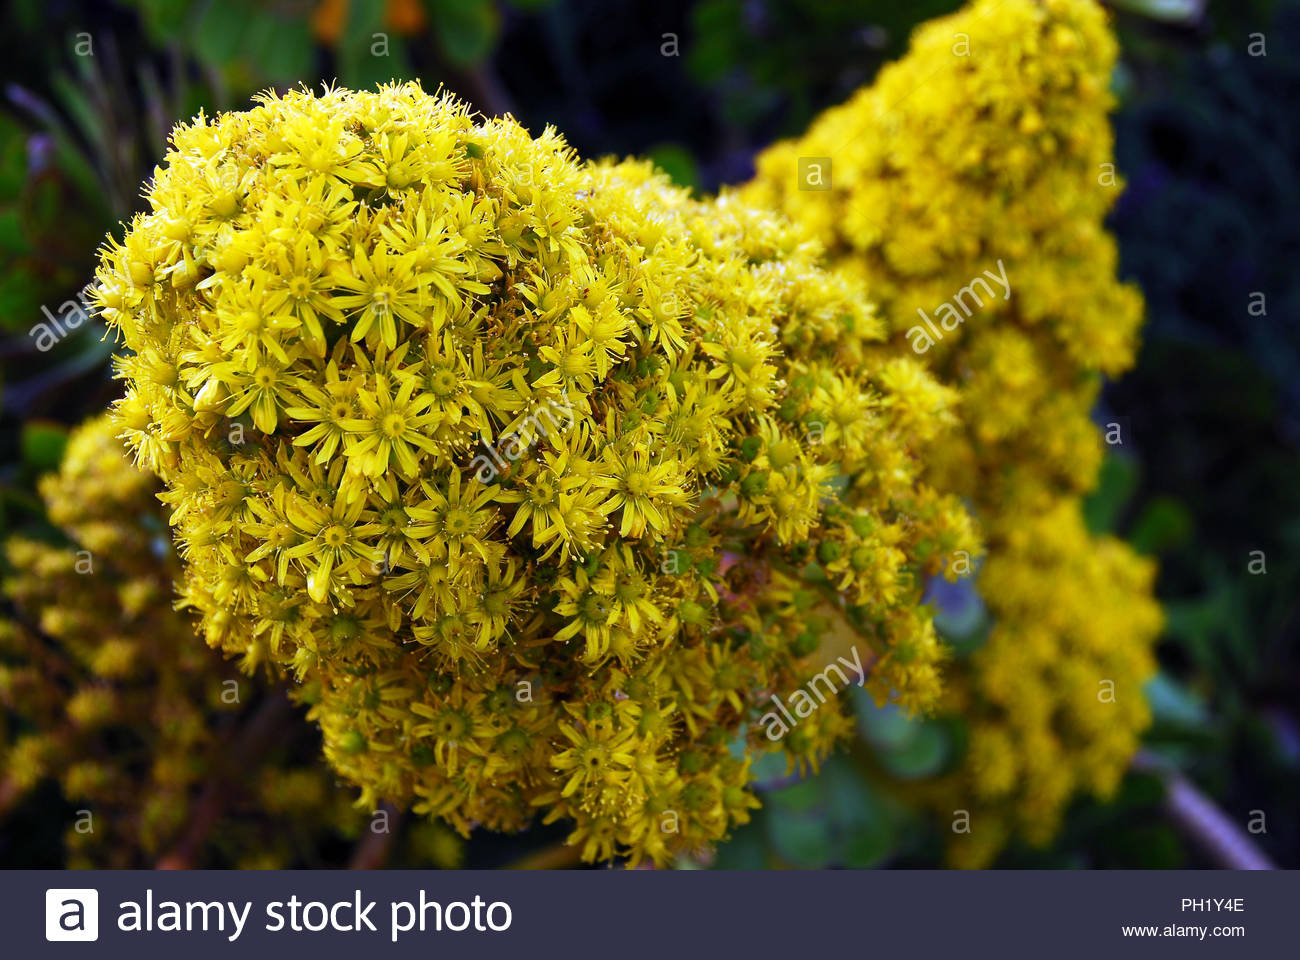 Isolated Bright Yellow Flower Cluster Blooming On Succulent Plant